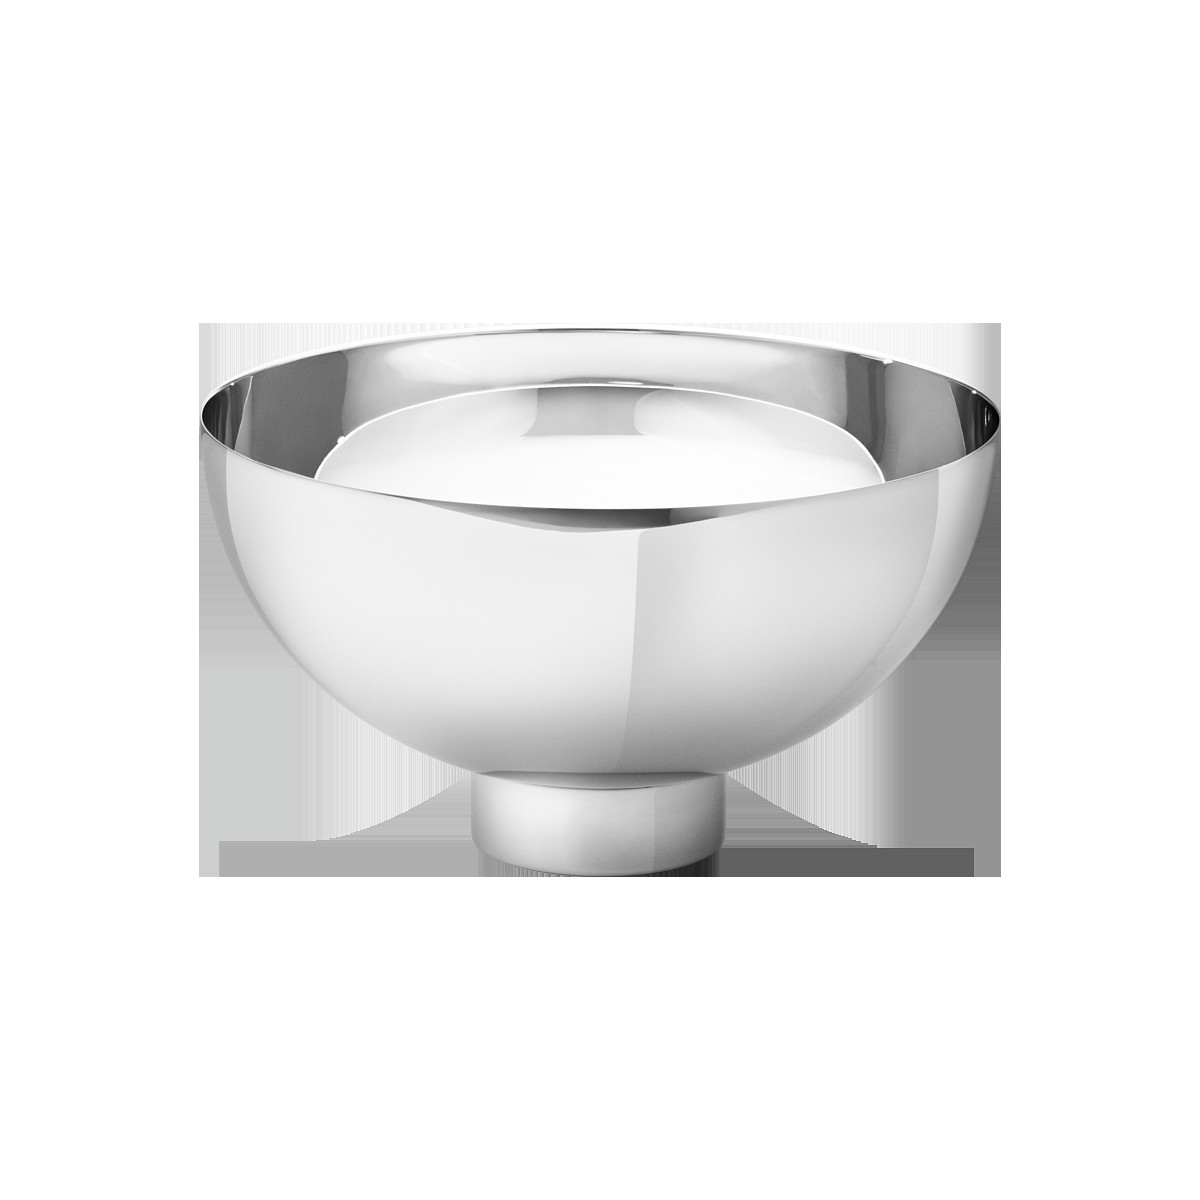 georg jensen ilse vase of ilse bowl medium within pack 3586643 ilse bowl ss mirror m